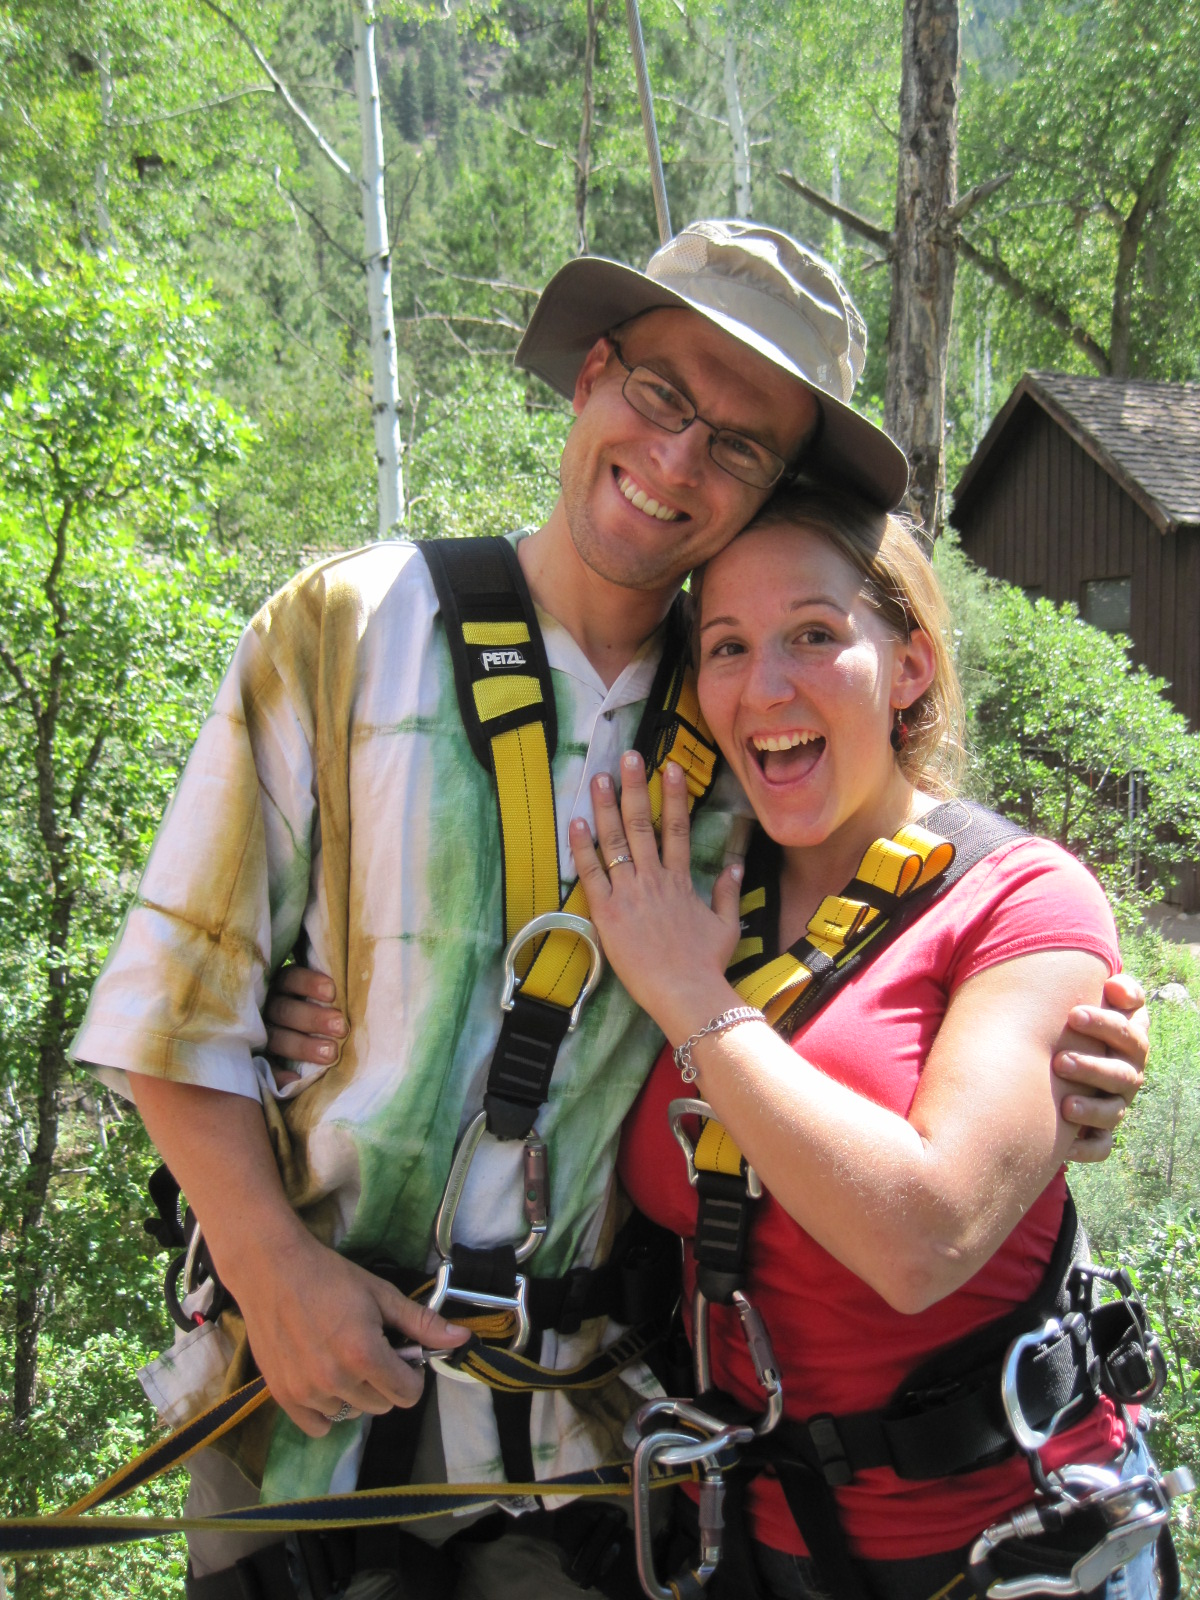 A couple celebrates their engagement at Soaring Tree Top Adventures